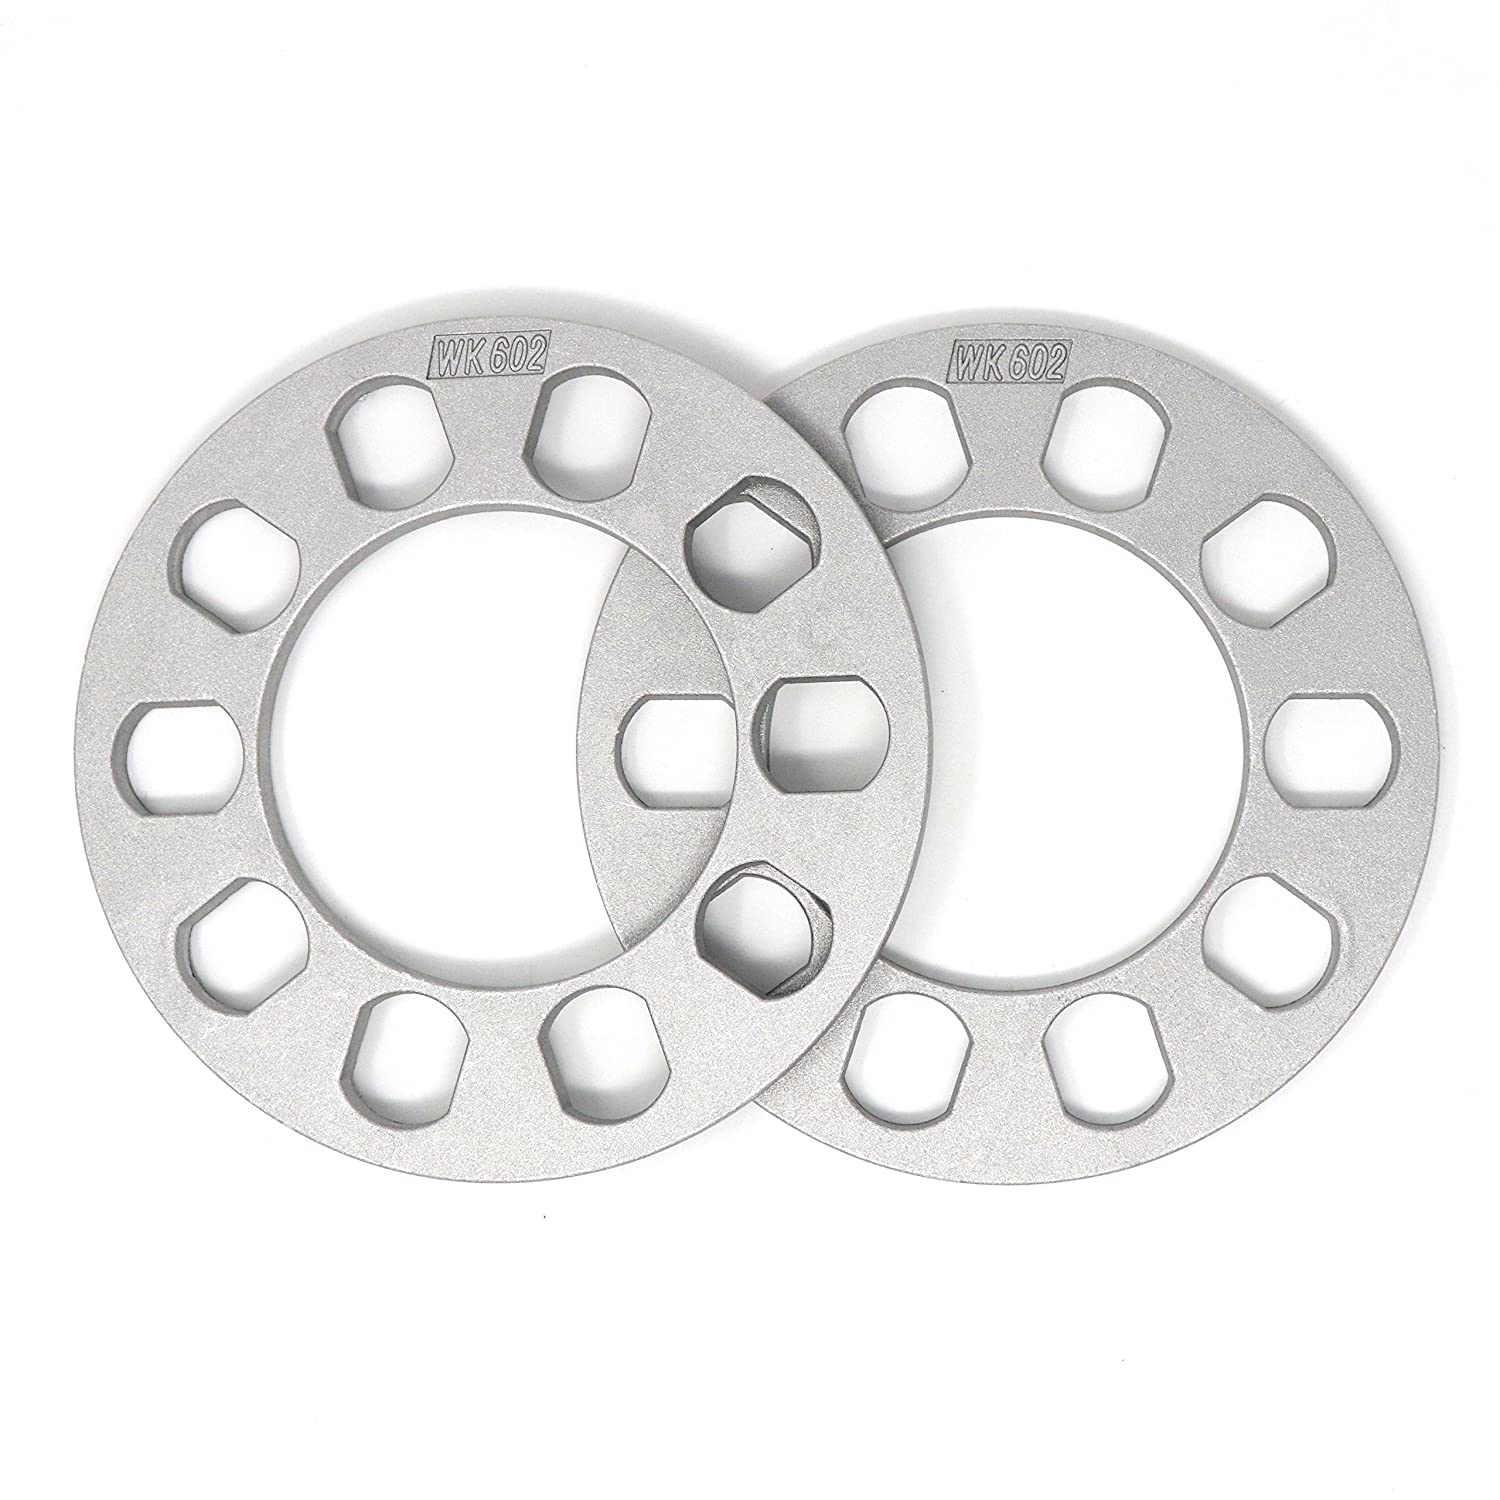 "Amazon.com: White Knight 602-2 Aluminum Alloy 5 x 4.5""-5"" Wheel Spacer,  (Pack of 2): Automotive"